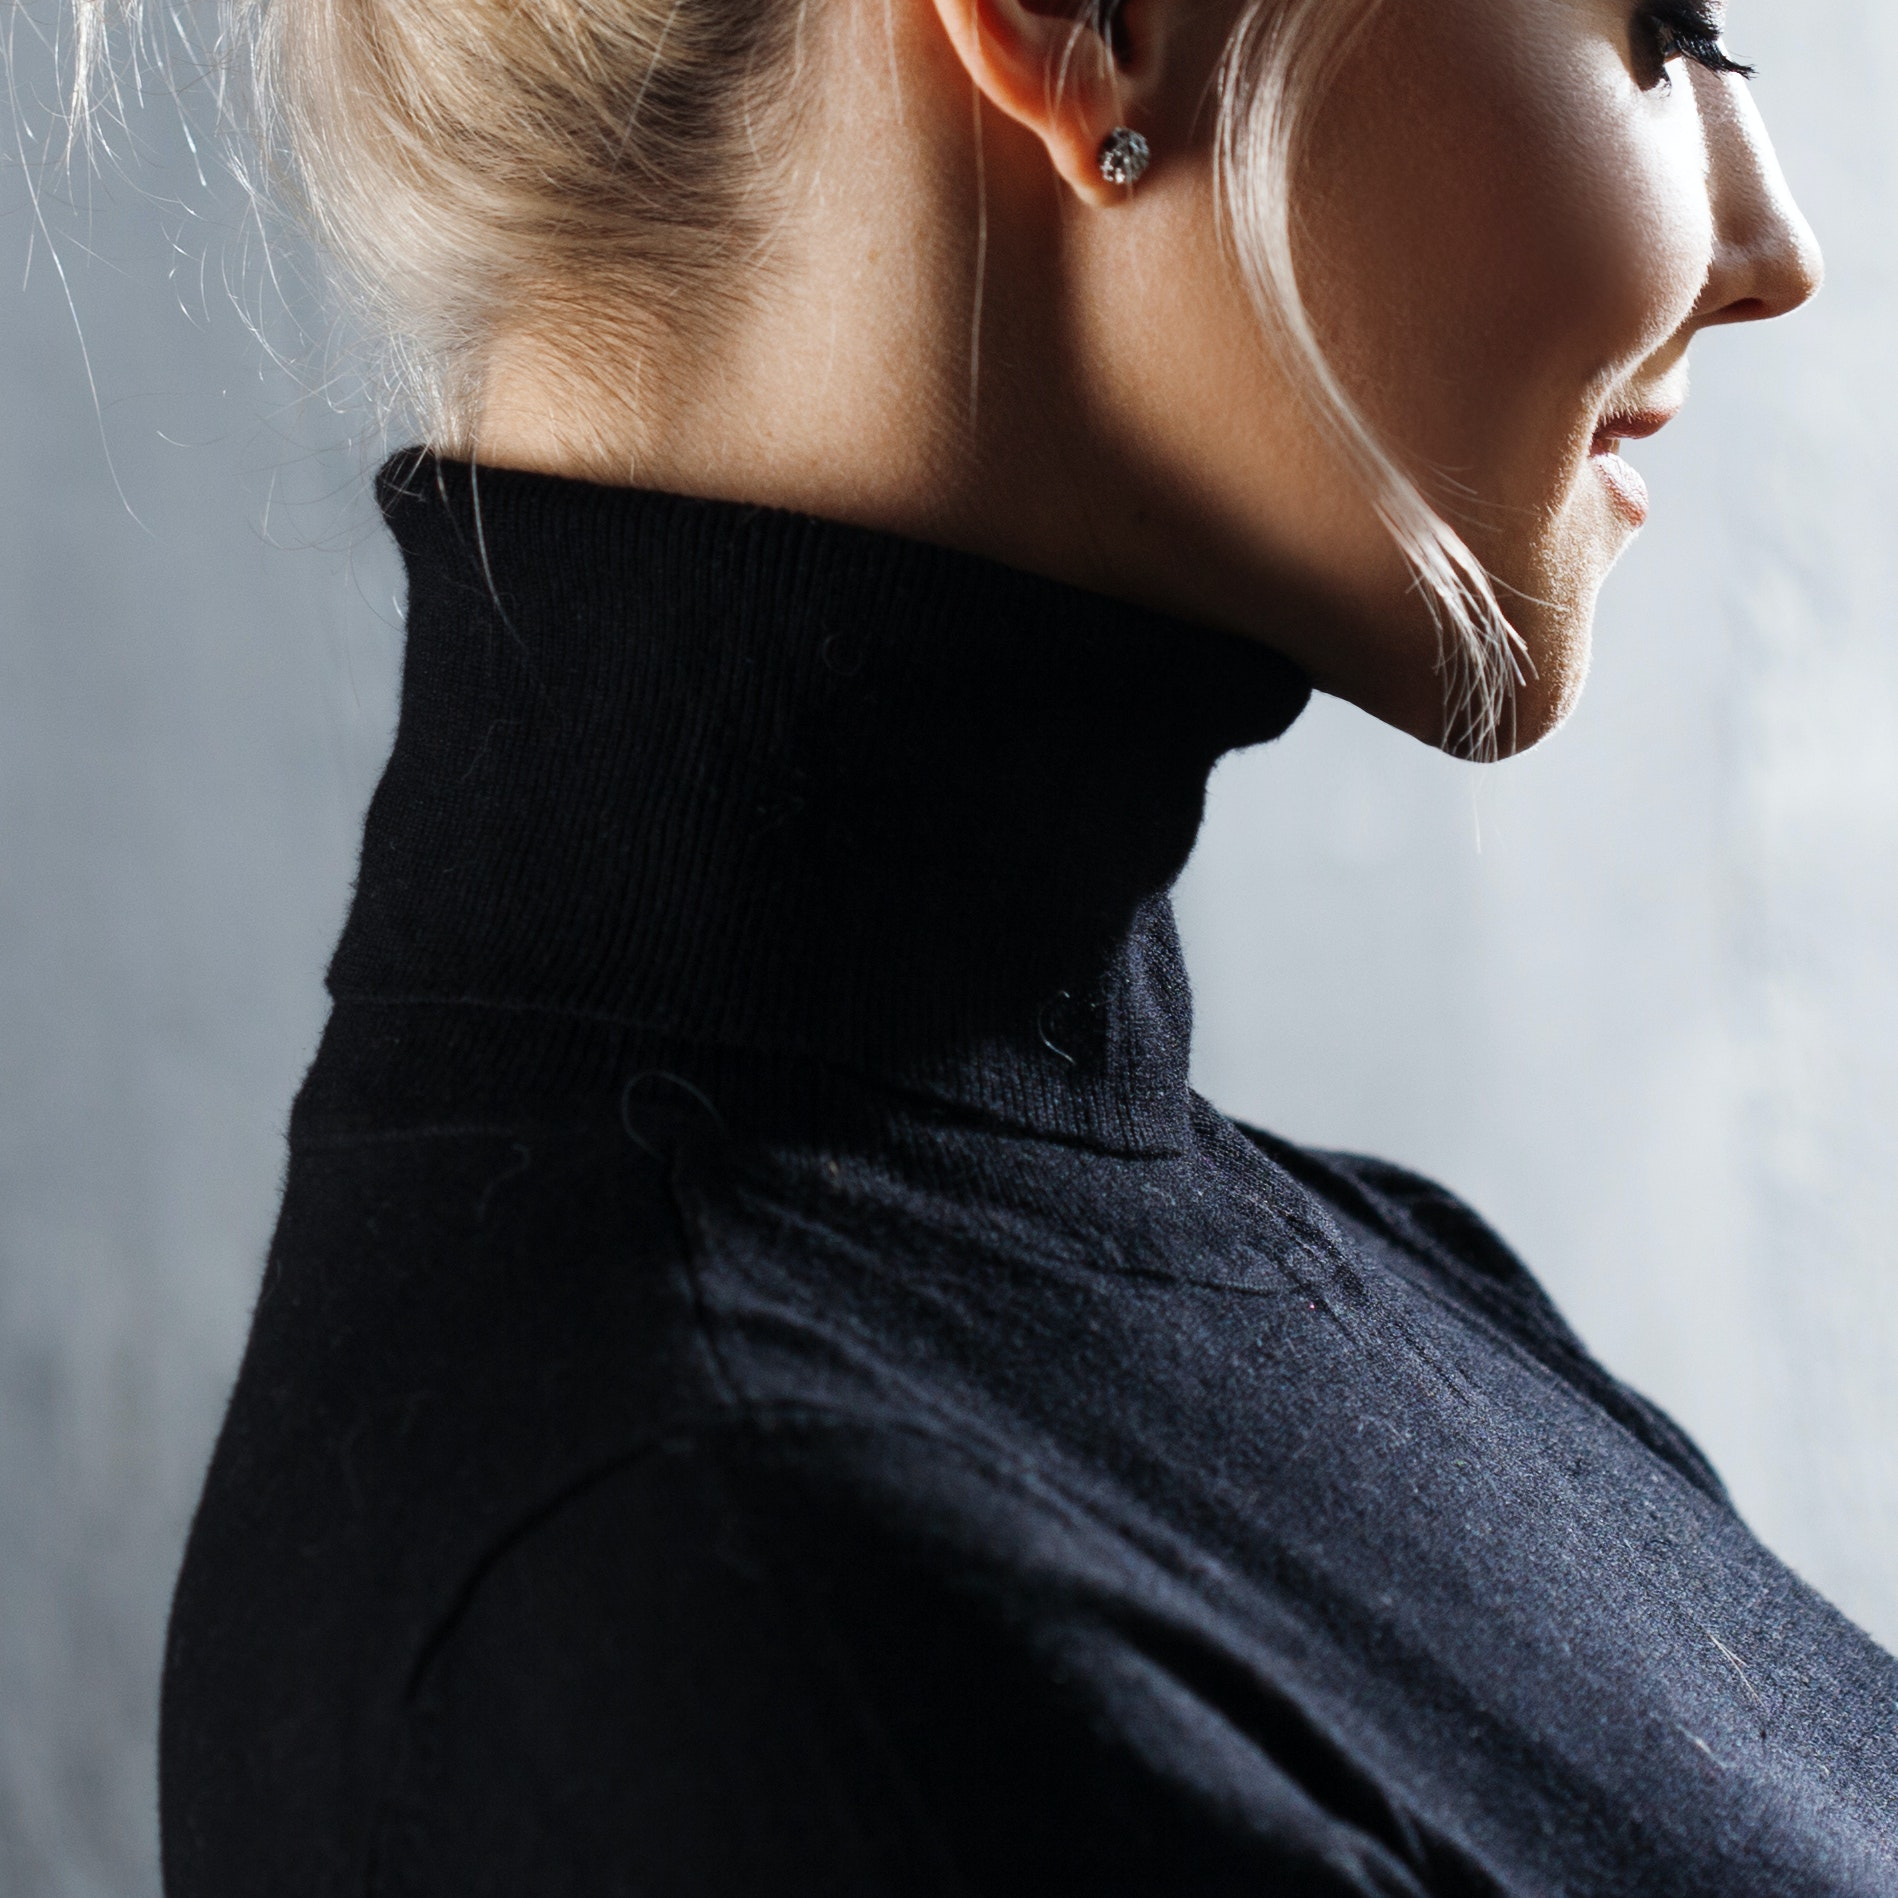 Why You Should Avoid Turtlenecks After a Fraxel Laser, and Other Skin-Healing Tips